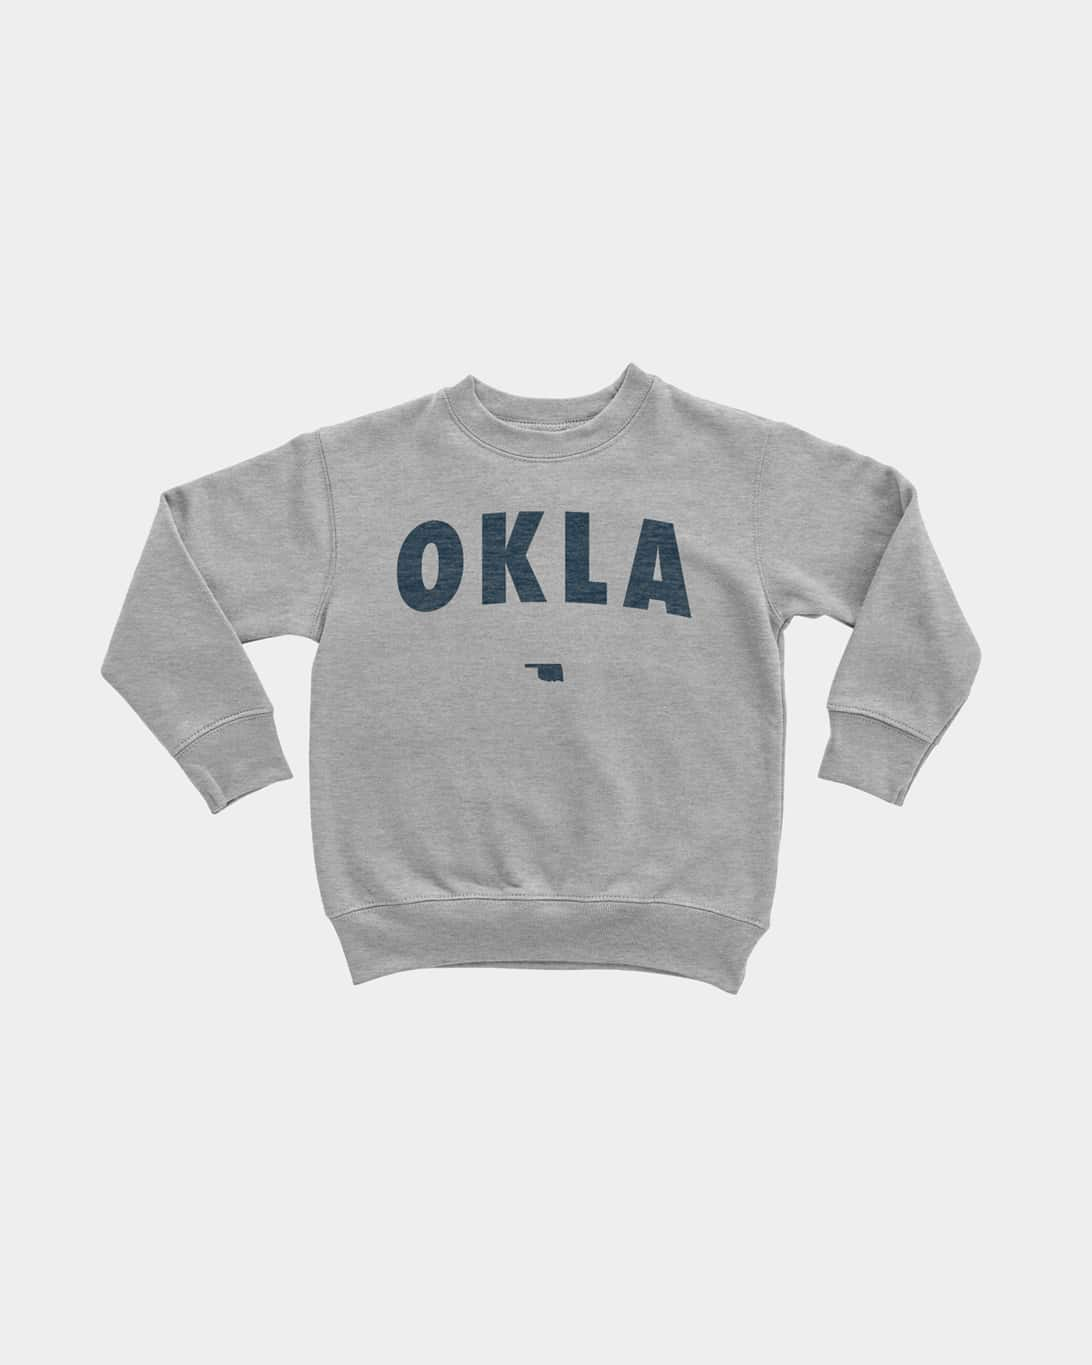 A mockup of a grey kid's pullover that says OKLA in navy blue ink